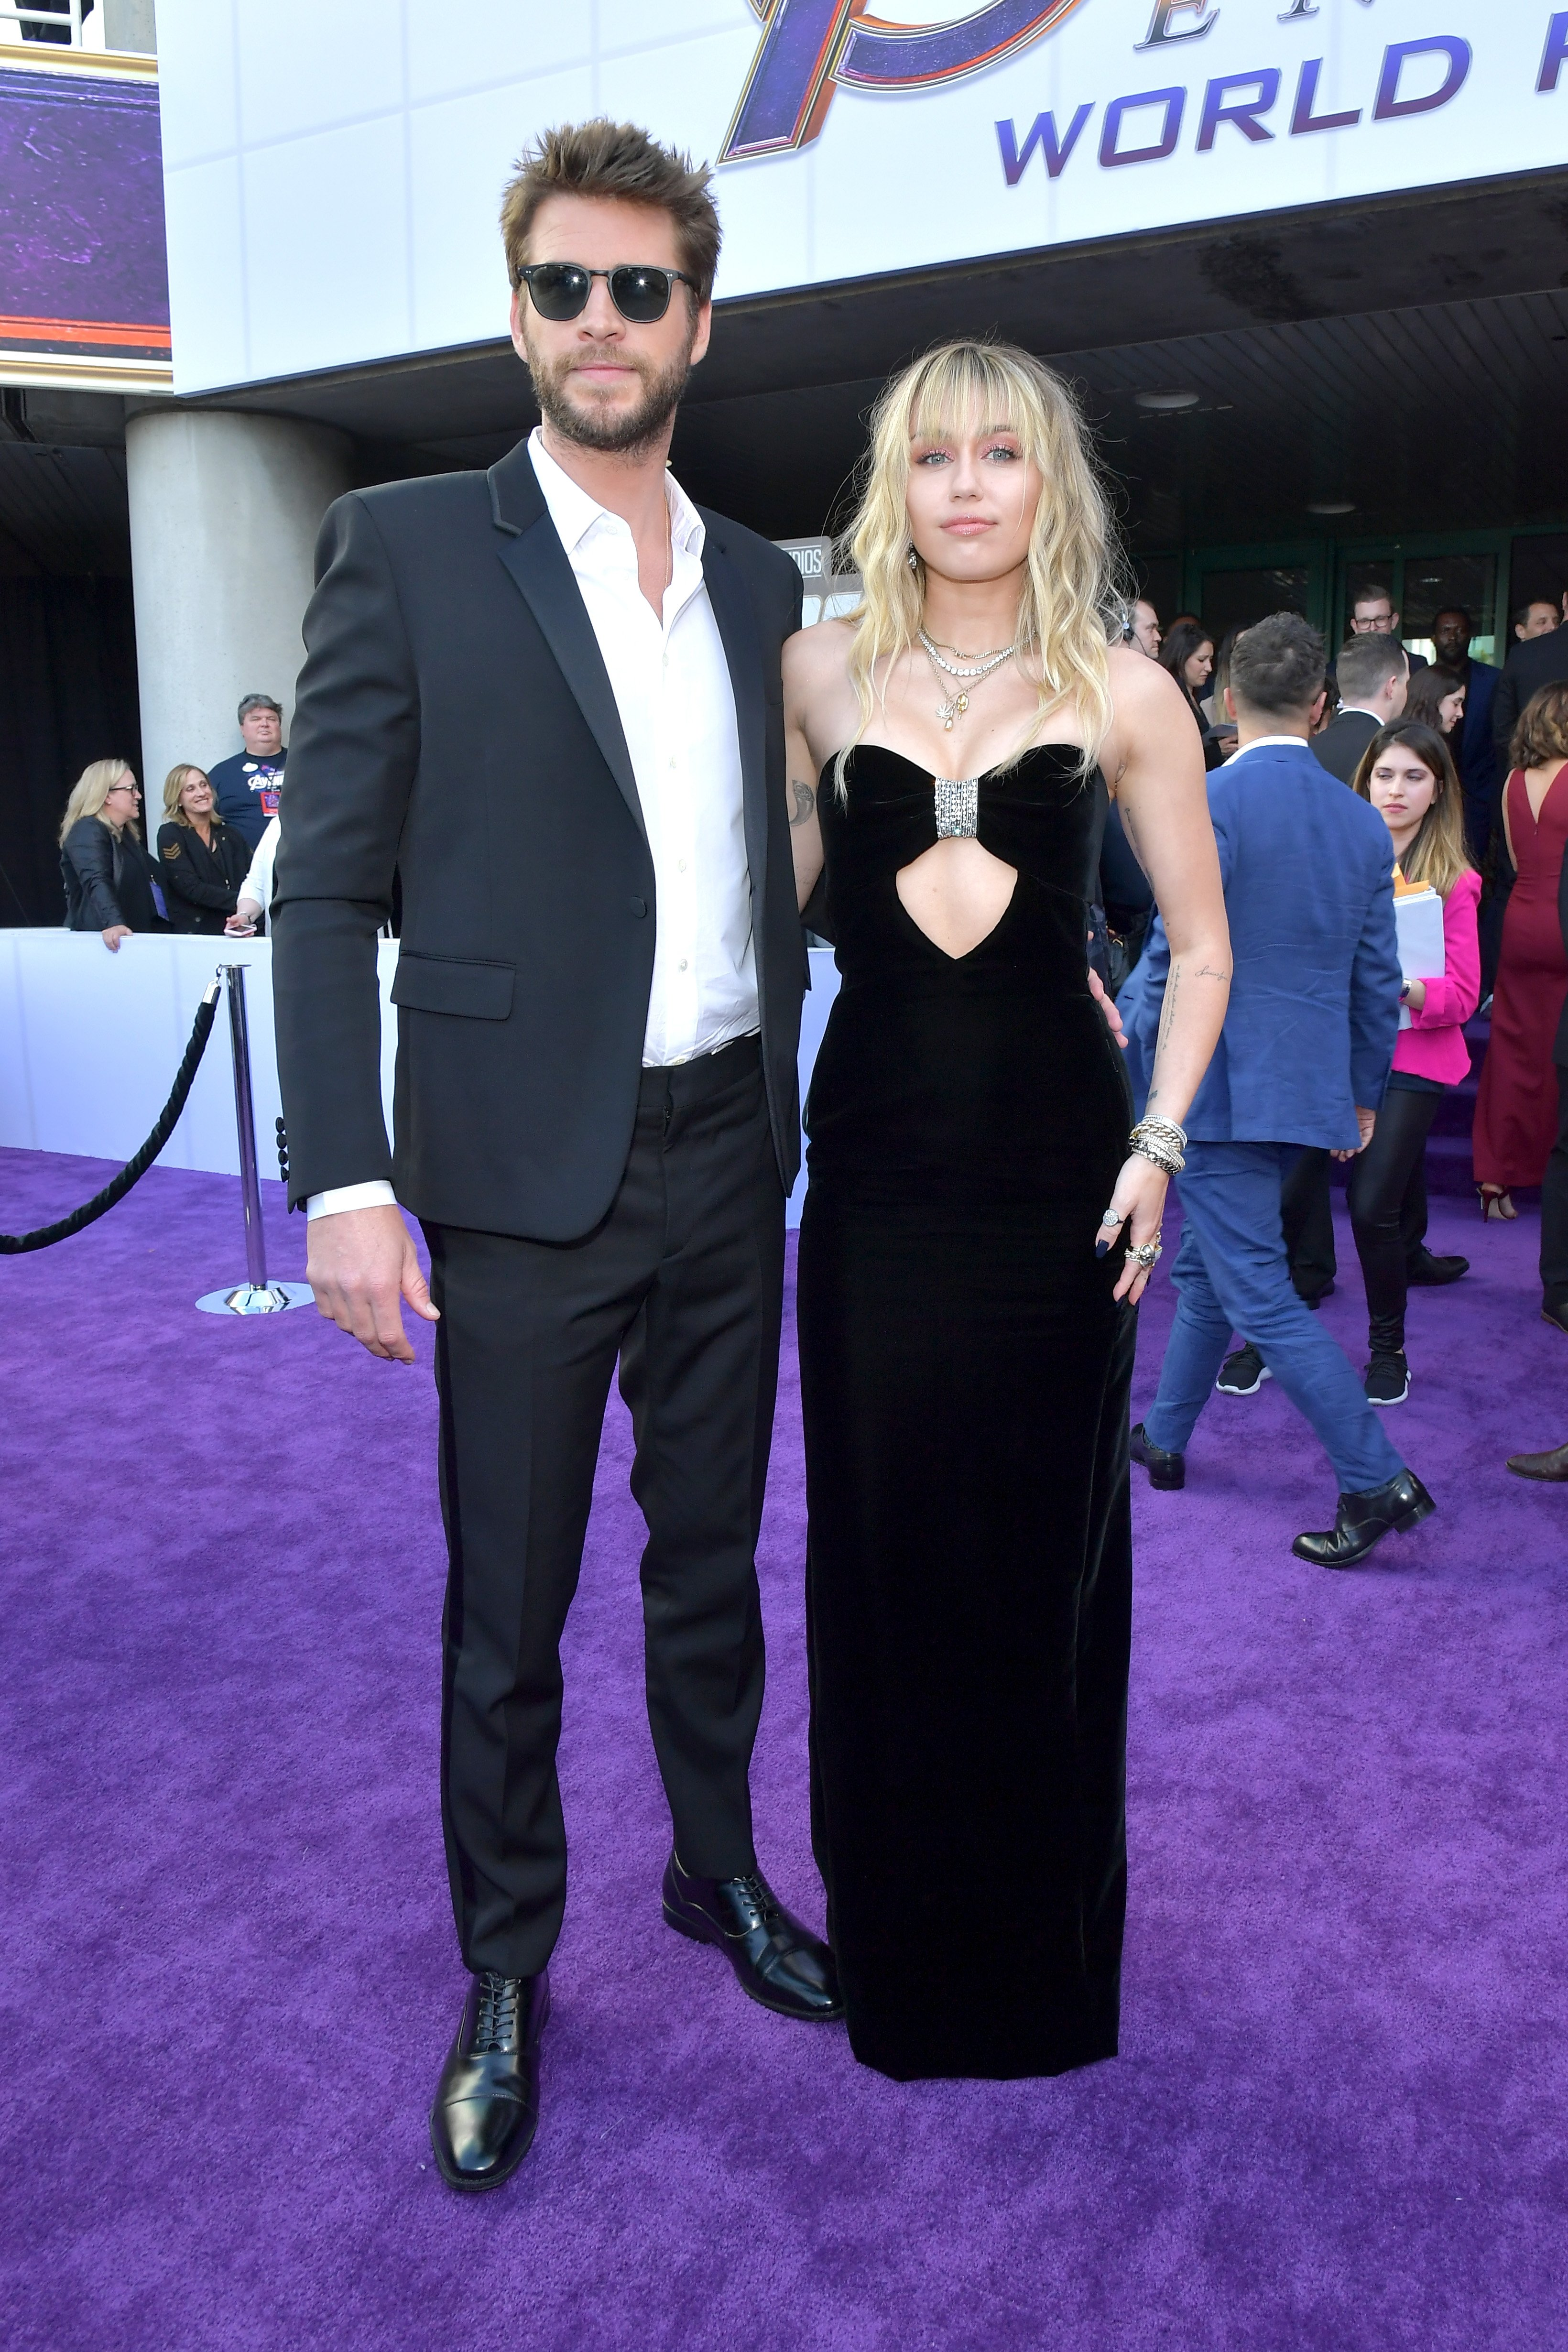 "Liam Hemsworth and Miley Cyrus at the world premiere of Walt Disney Studios Motion Pictures ""Avengers: Endgame"" at the Los Angeles Convention Center on April 22, 2019 in California 